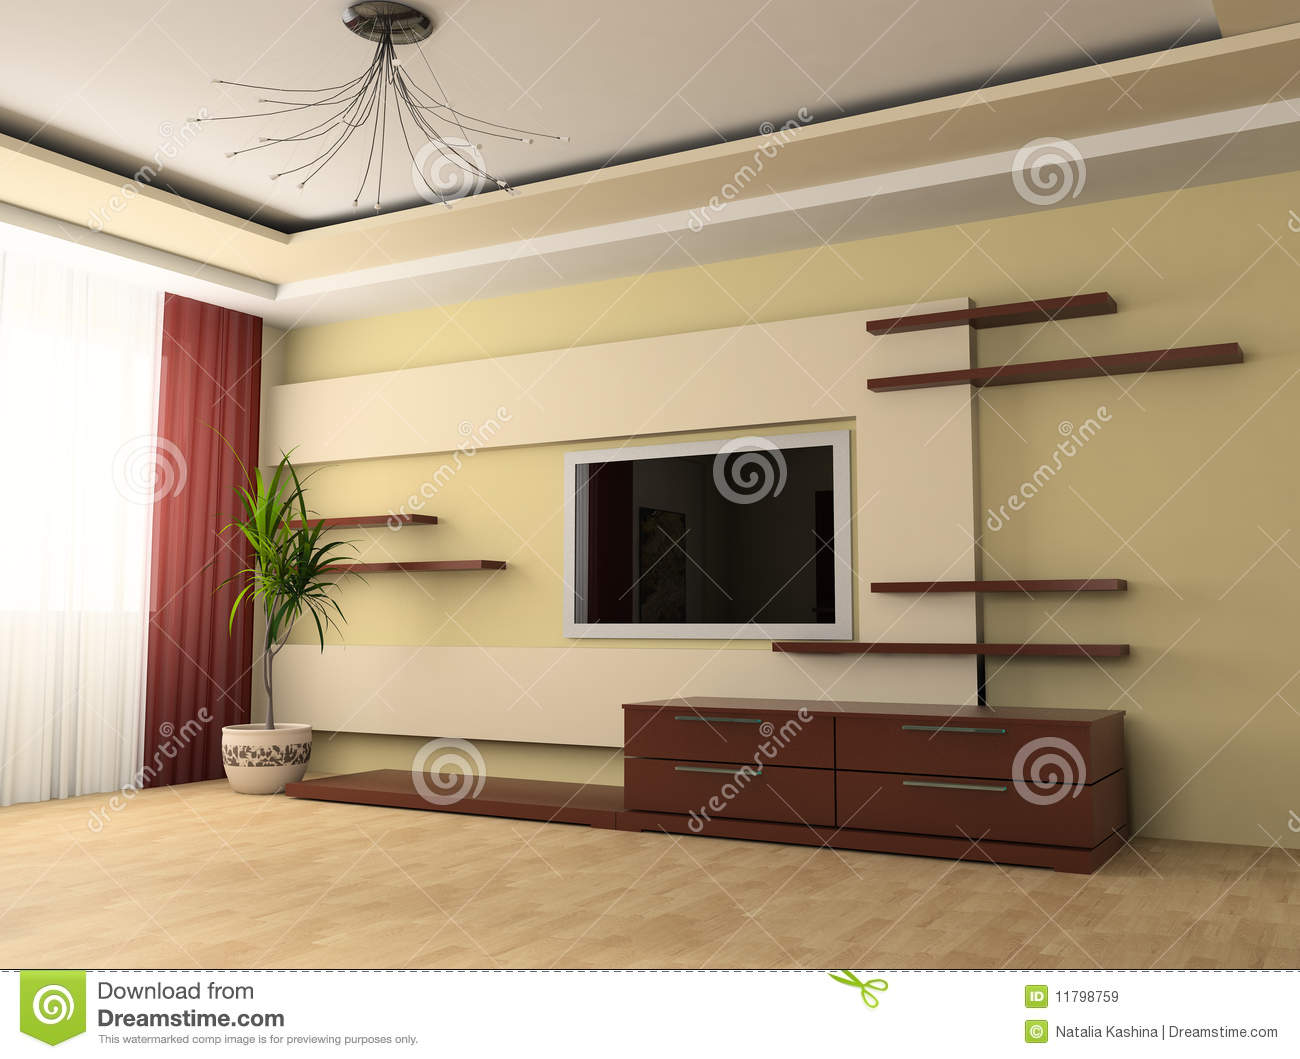 Drawing room royalty free stock images image 11798759 for Drawing room design images